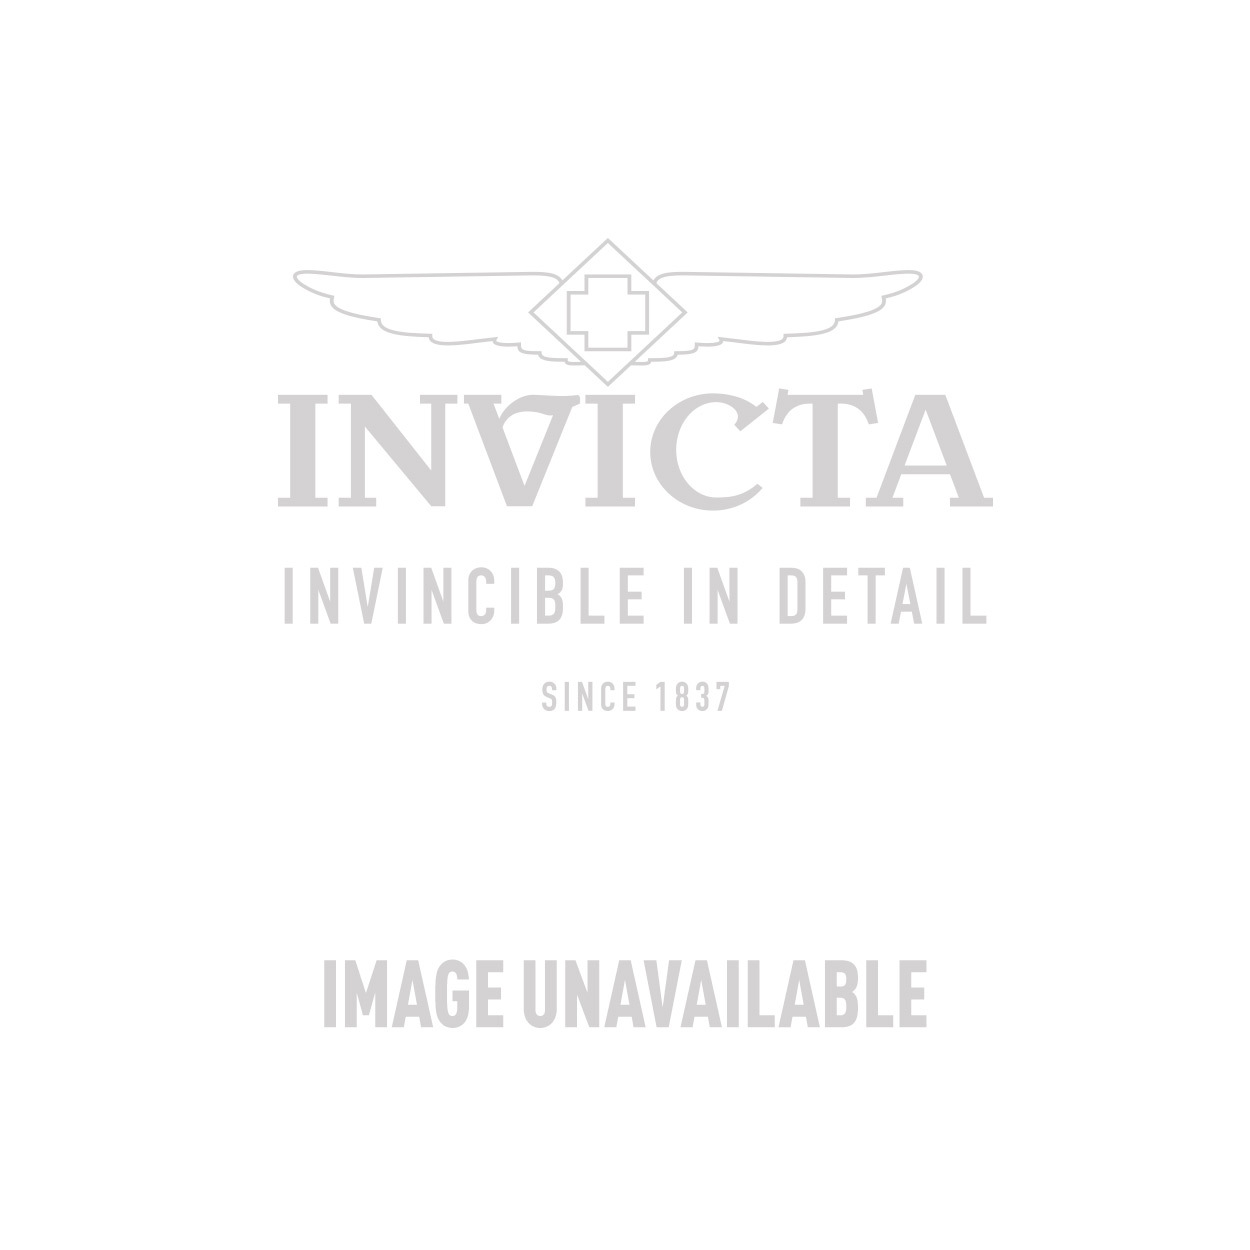 Invicta S1 Rally Swiss Made Quartz Watch - Gold case with Black tone Leather band - Model 15794